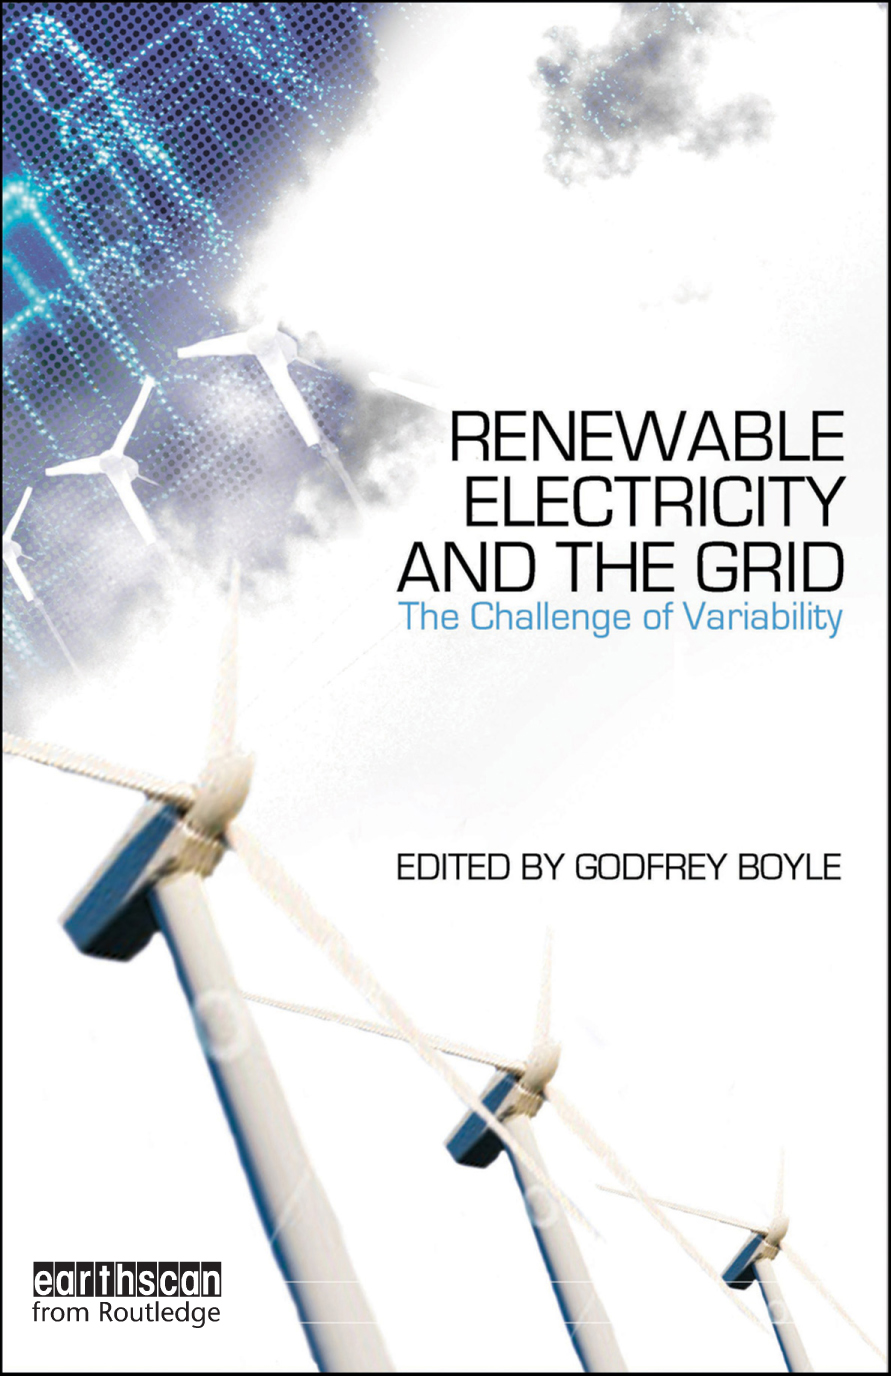 Download Ebook Renewable Electricity and the Grid by Godfrey Boyle Pdf